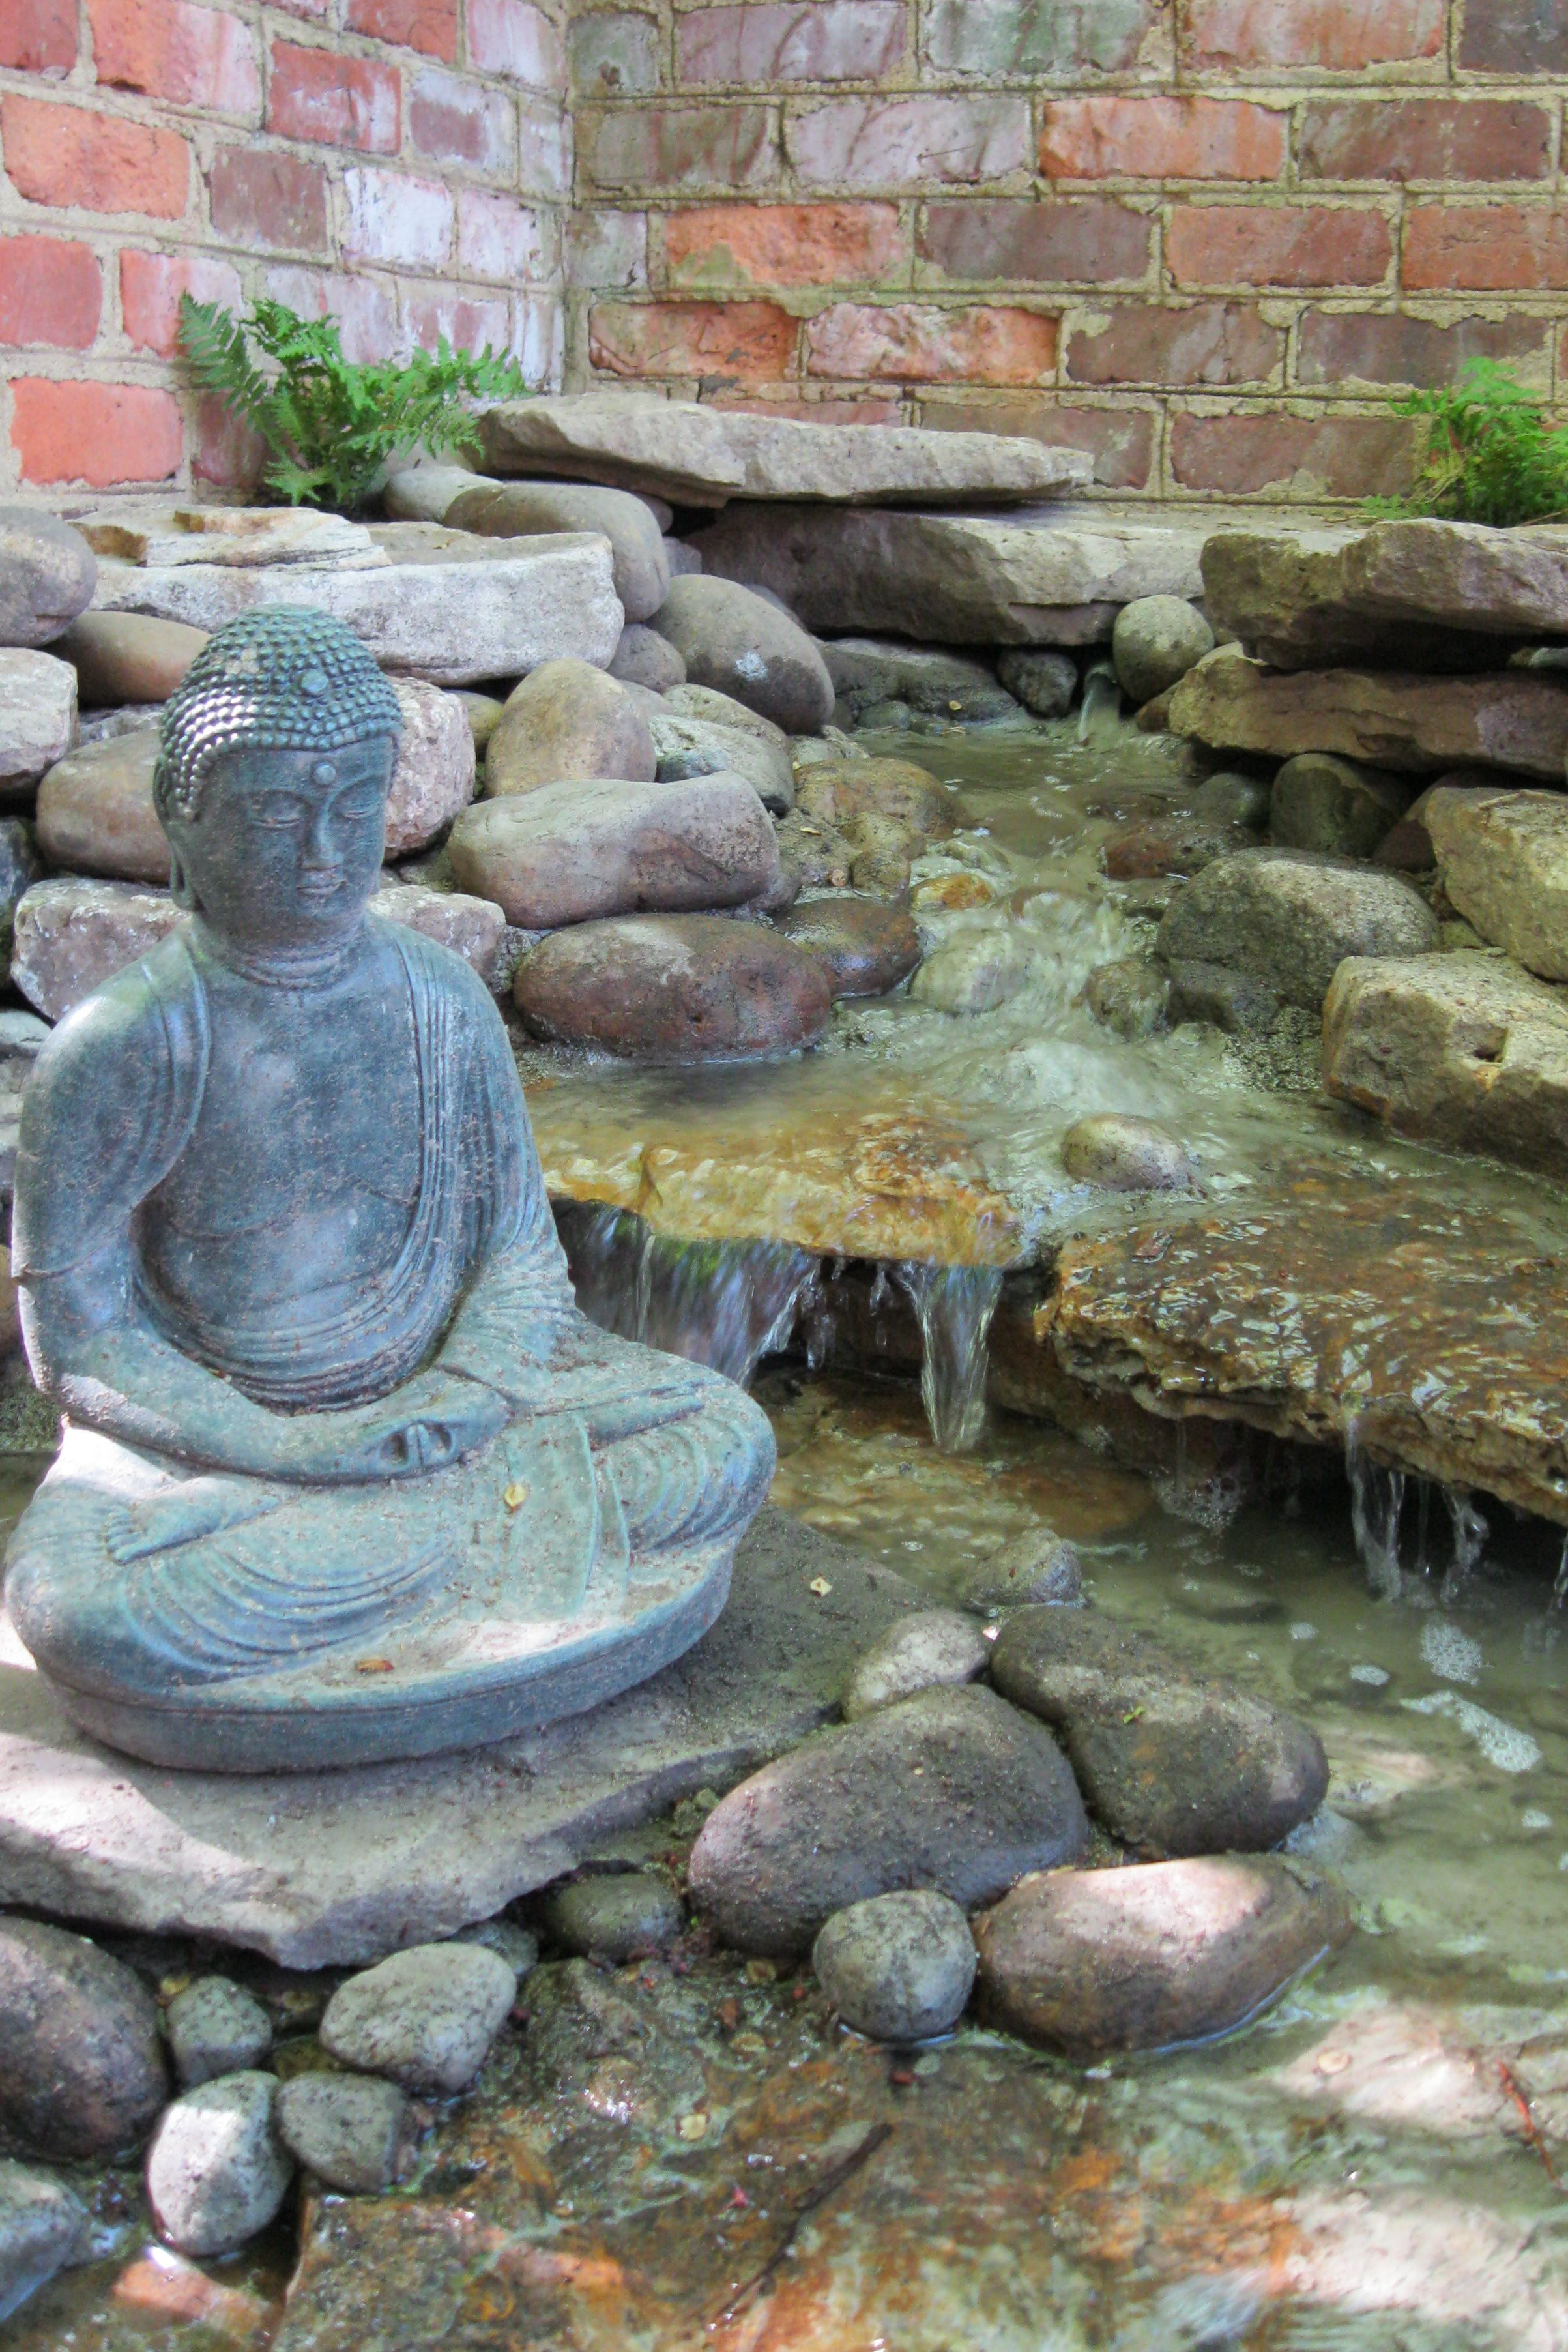 Even small spaces can fit unique water features 39 like 39 outdoor dreams of facebook and you will - Water features for small spaces plan ...